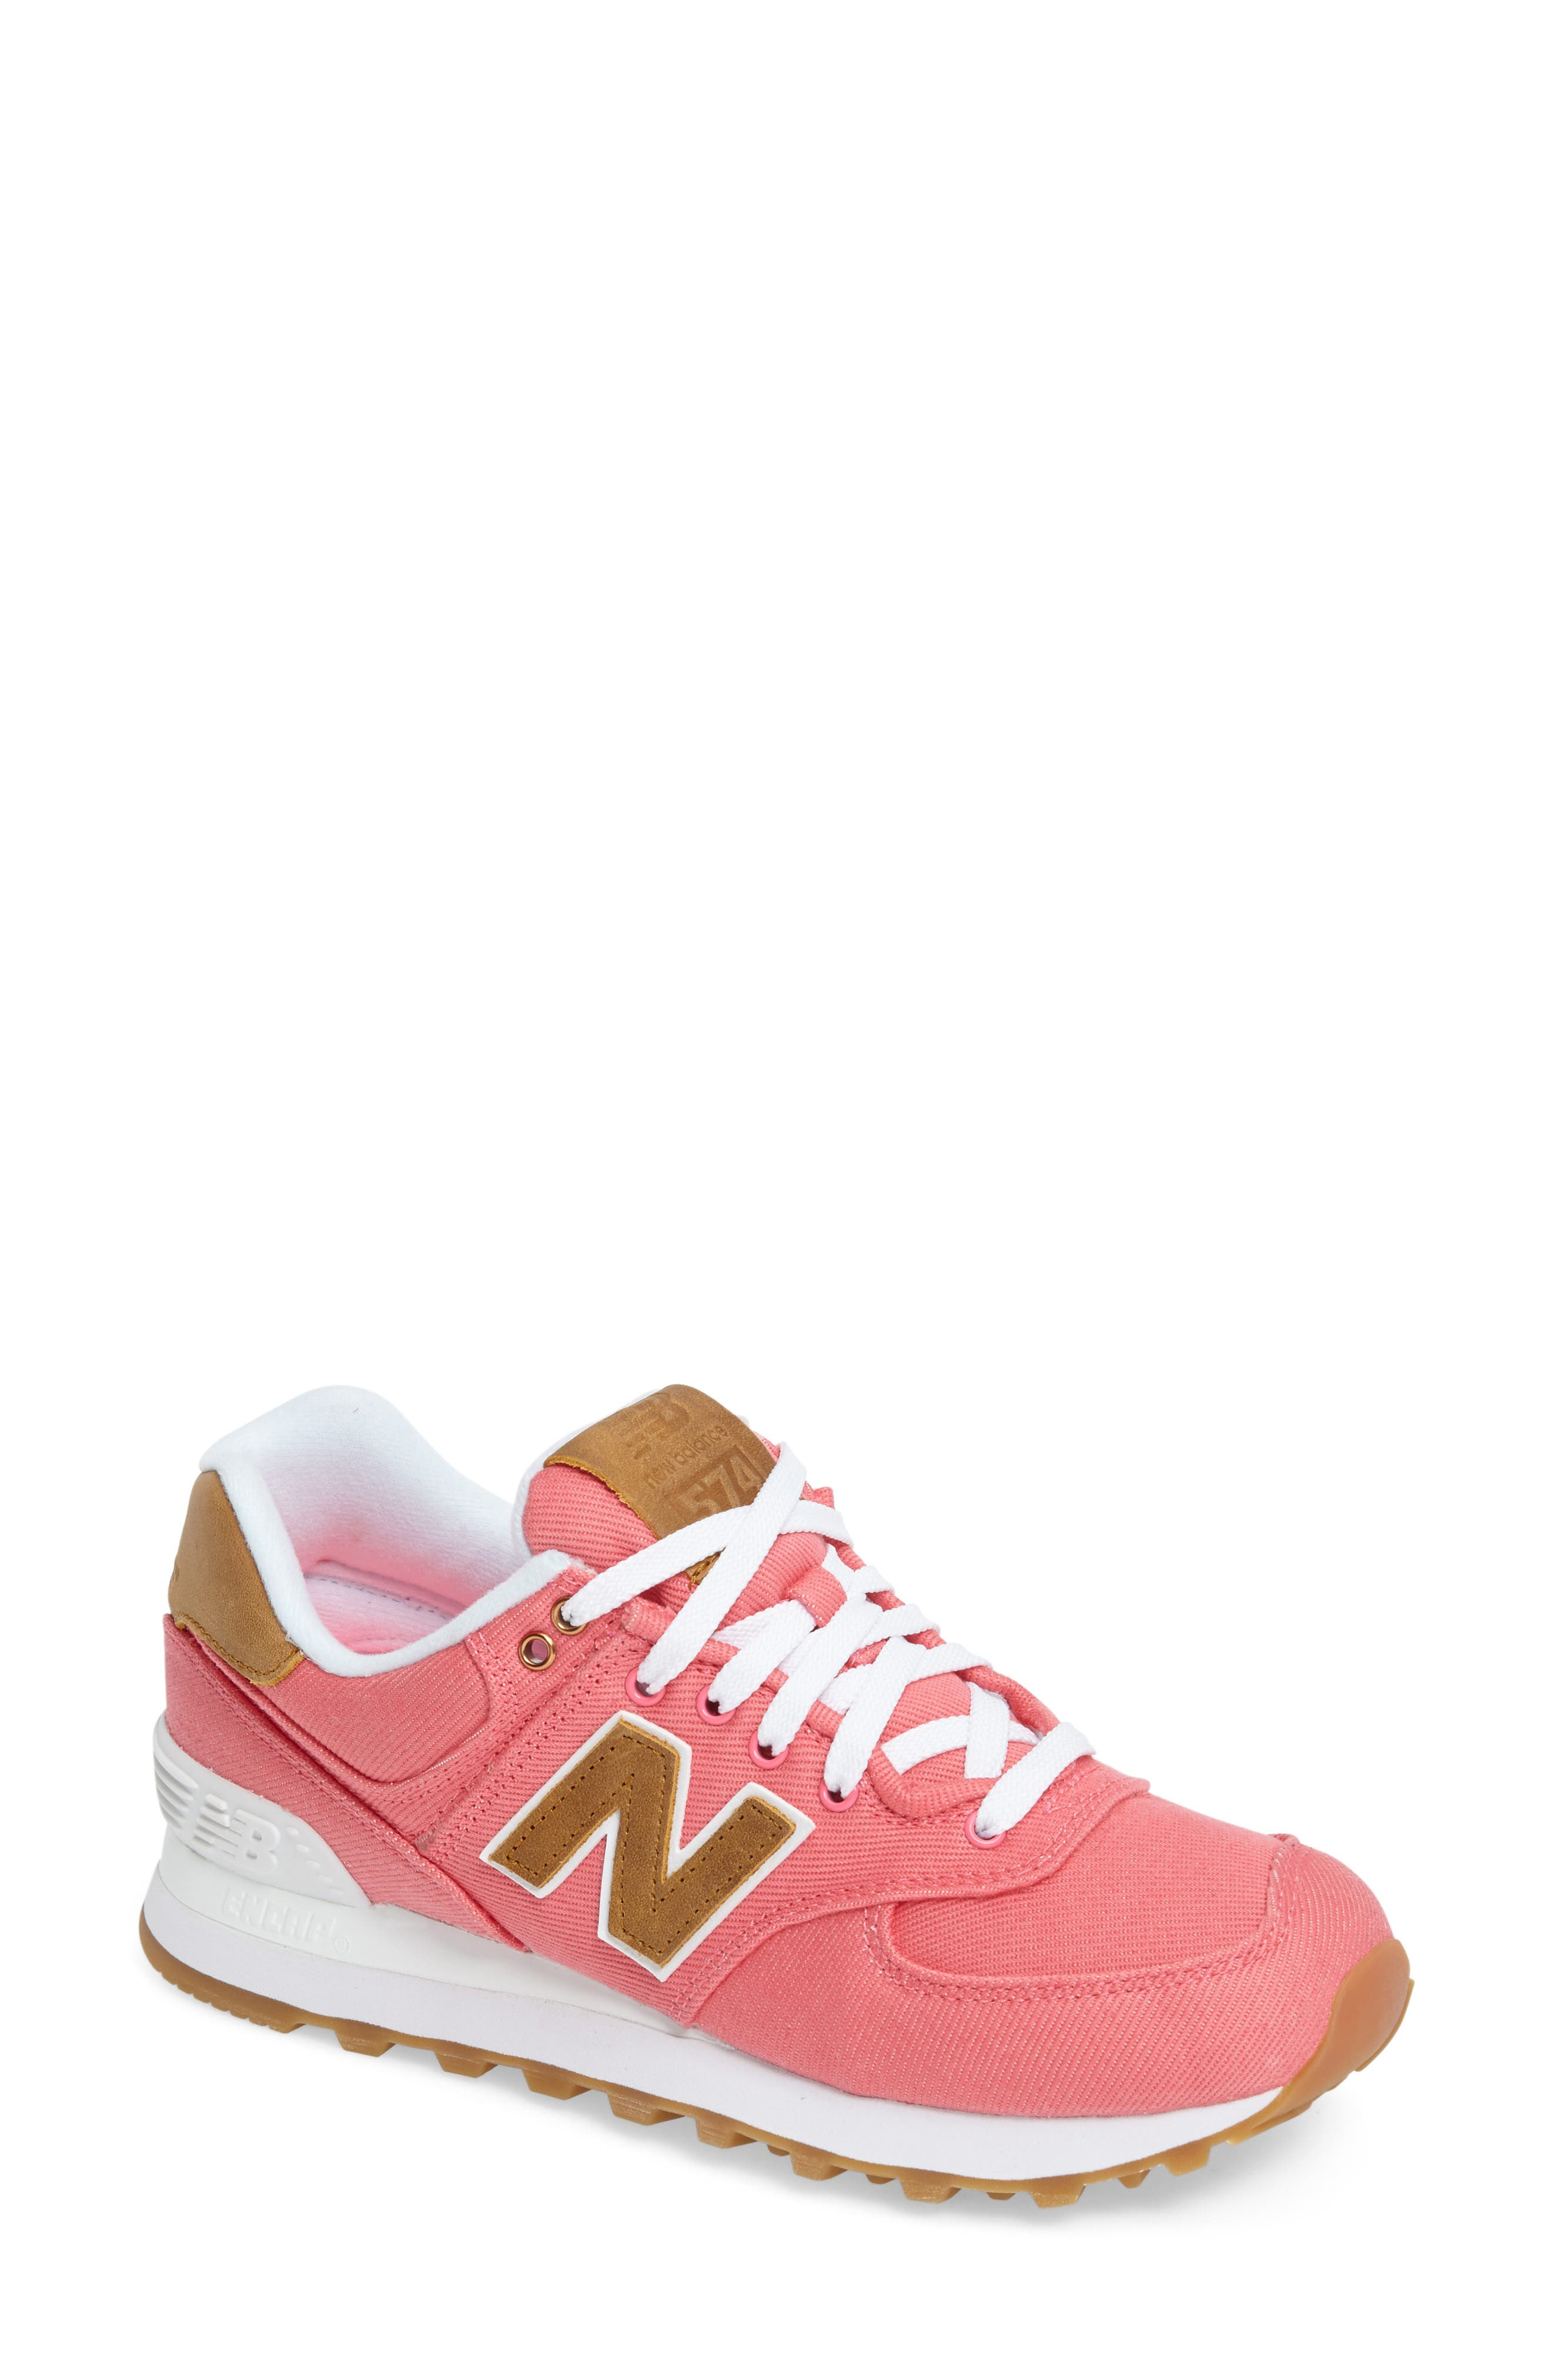 New Balance 574 Canvas Sneaker (Women)